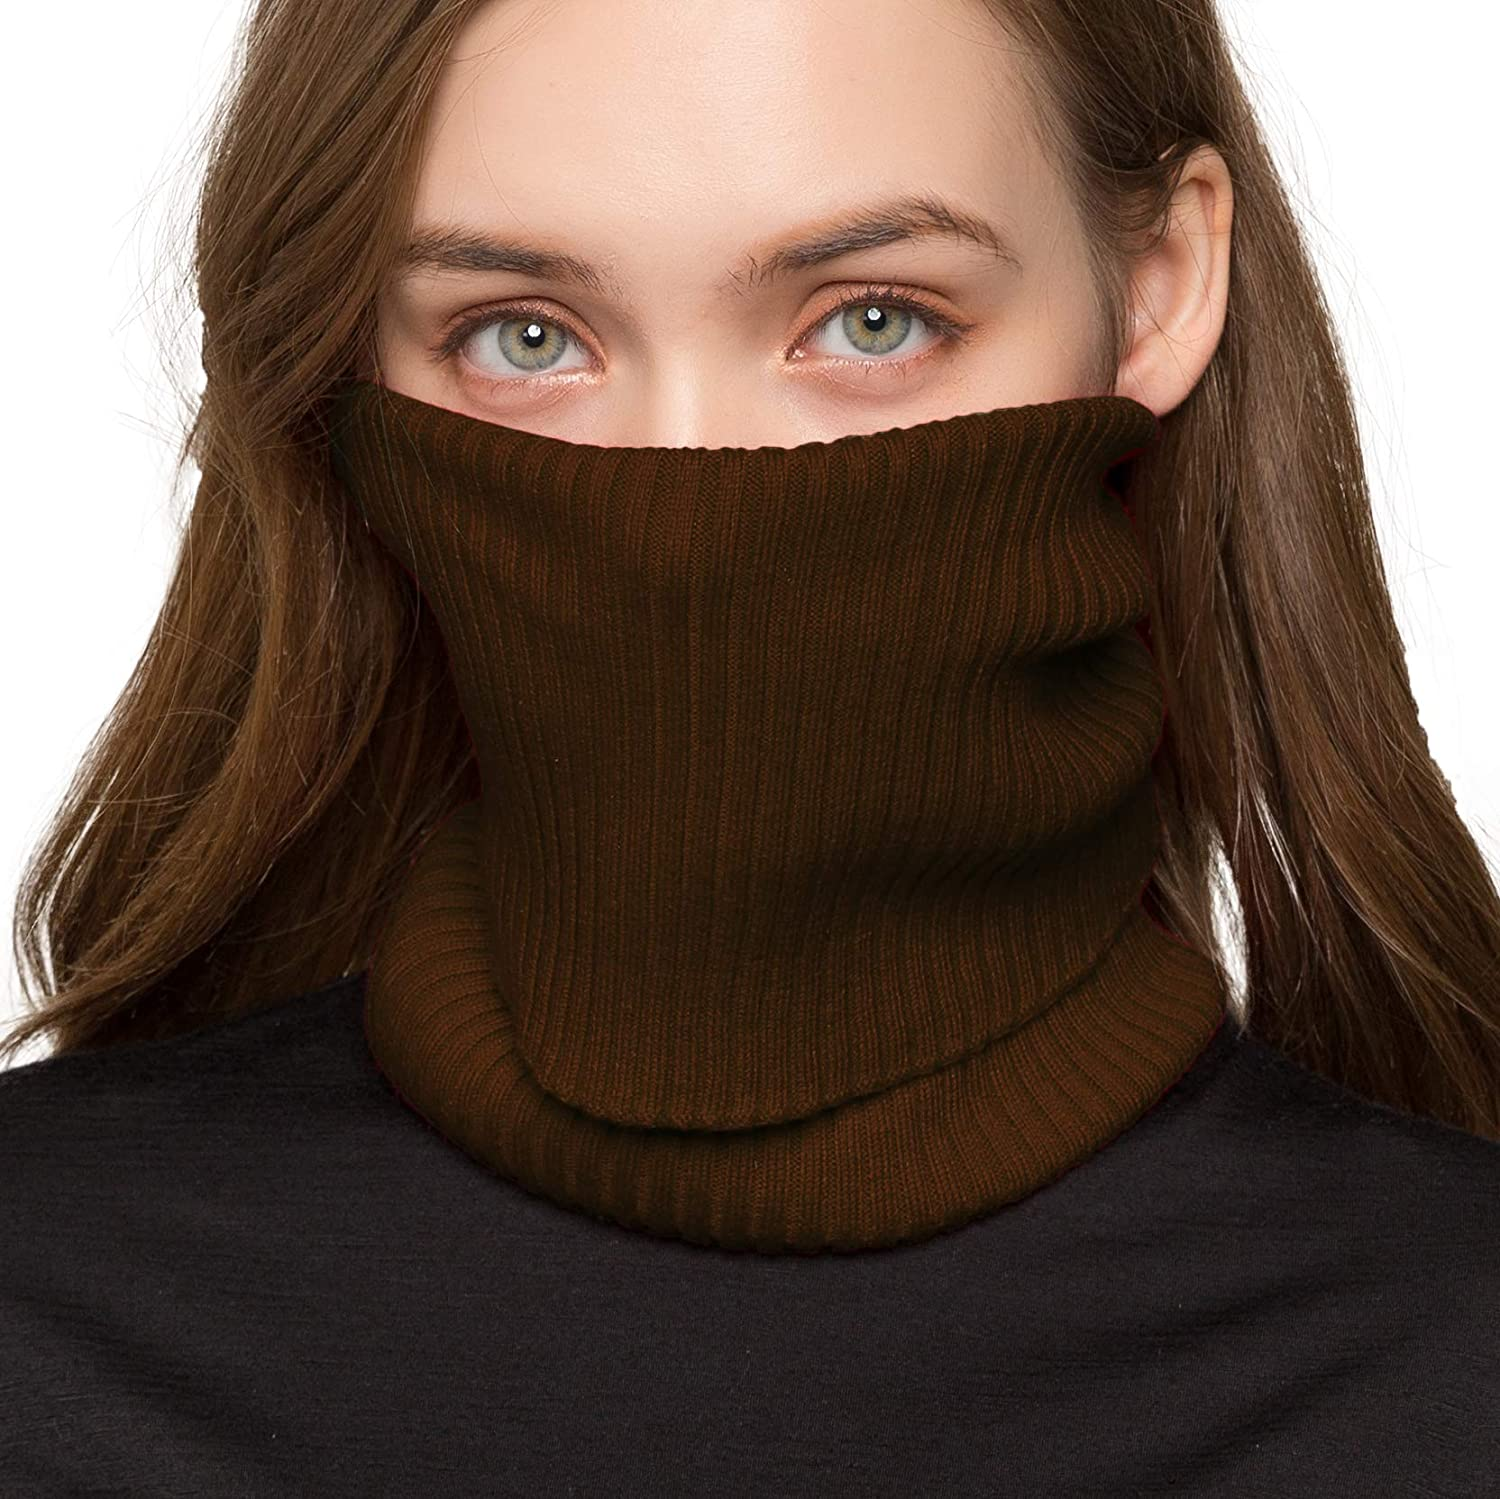 Zylioo Mulberry Silk Knit Ribbed Tube Scarf Multifunctional Face Covers Infinity Neck Warmer Windproof Neck Gaiter